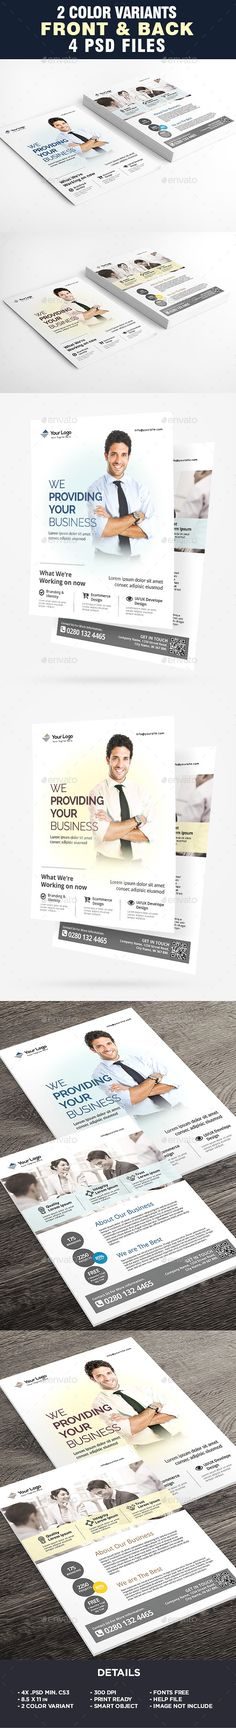 Buy Corporate Business Flyer Template by on GraphicRiver. Corporate Business Flyer Template All elements beside the image are fully editable CMYK – print ready Letter: Corporate Flyer, Corporate Business, Business Flyers, Business Flyer Templates, Label Templates, Creative Flyers, Creative Design, Creative Photoshop, Creative Inspiration